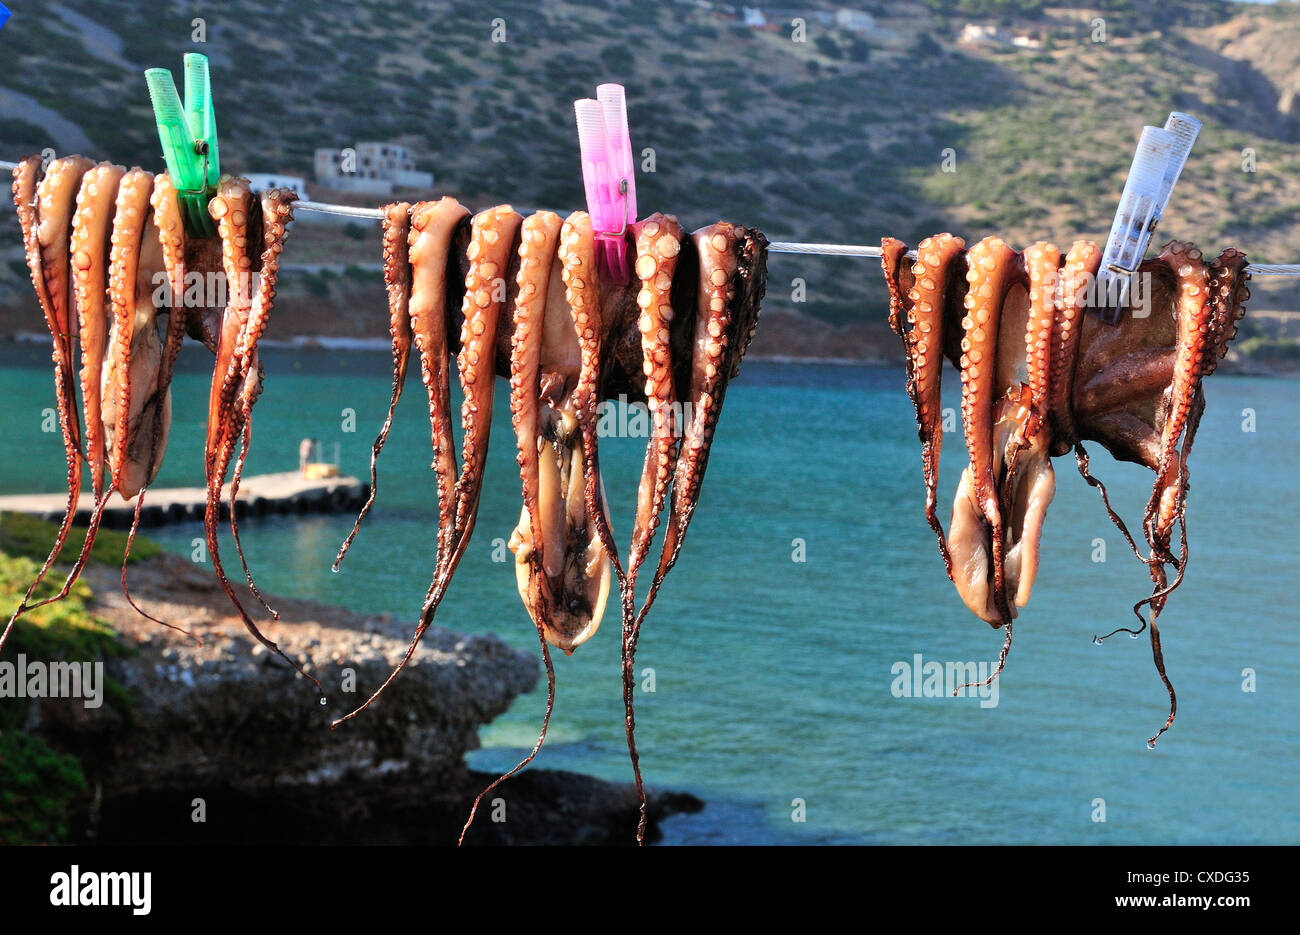 Freshly caught calamari or squid pegged out on a line and drying in the sun outside a taverna in Plaka, nr Elouda, - Stock Image